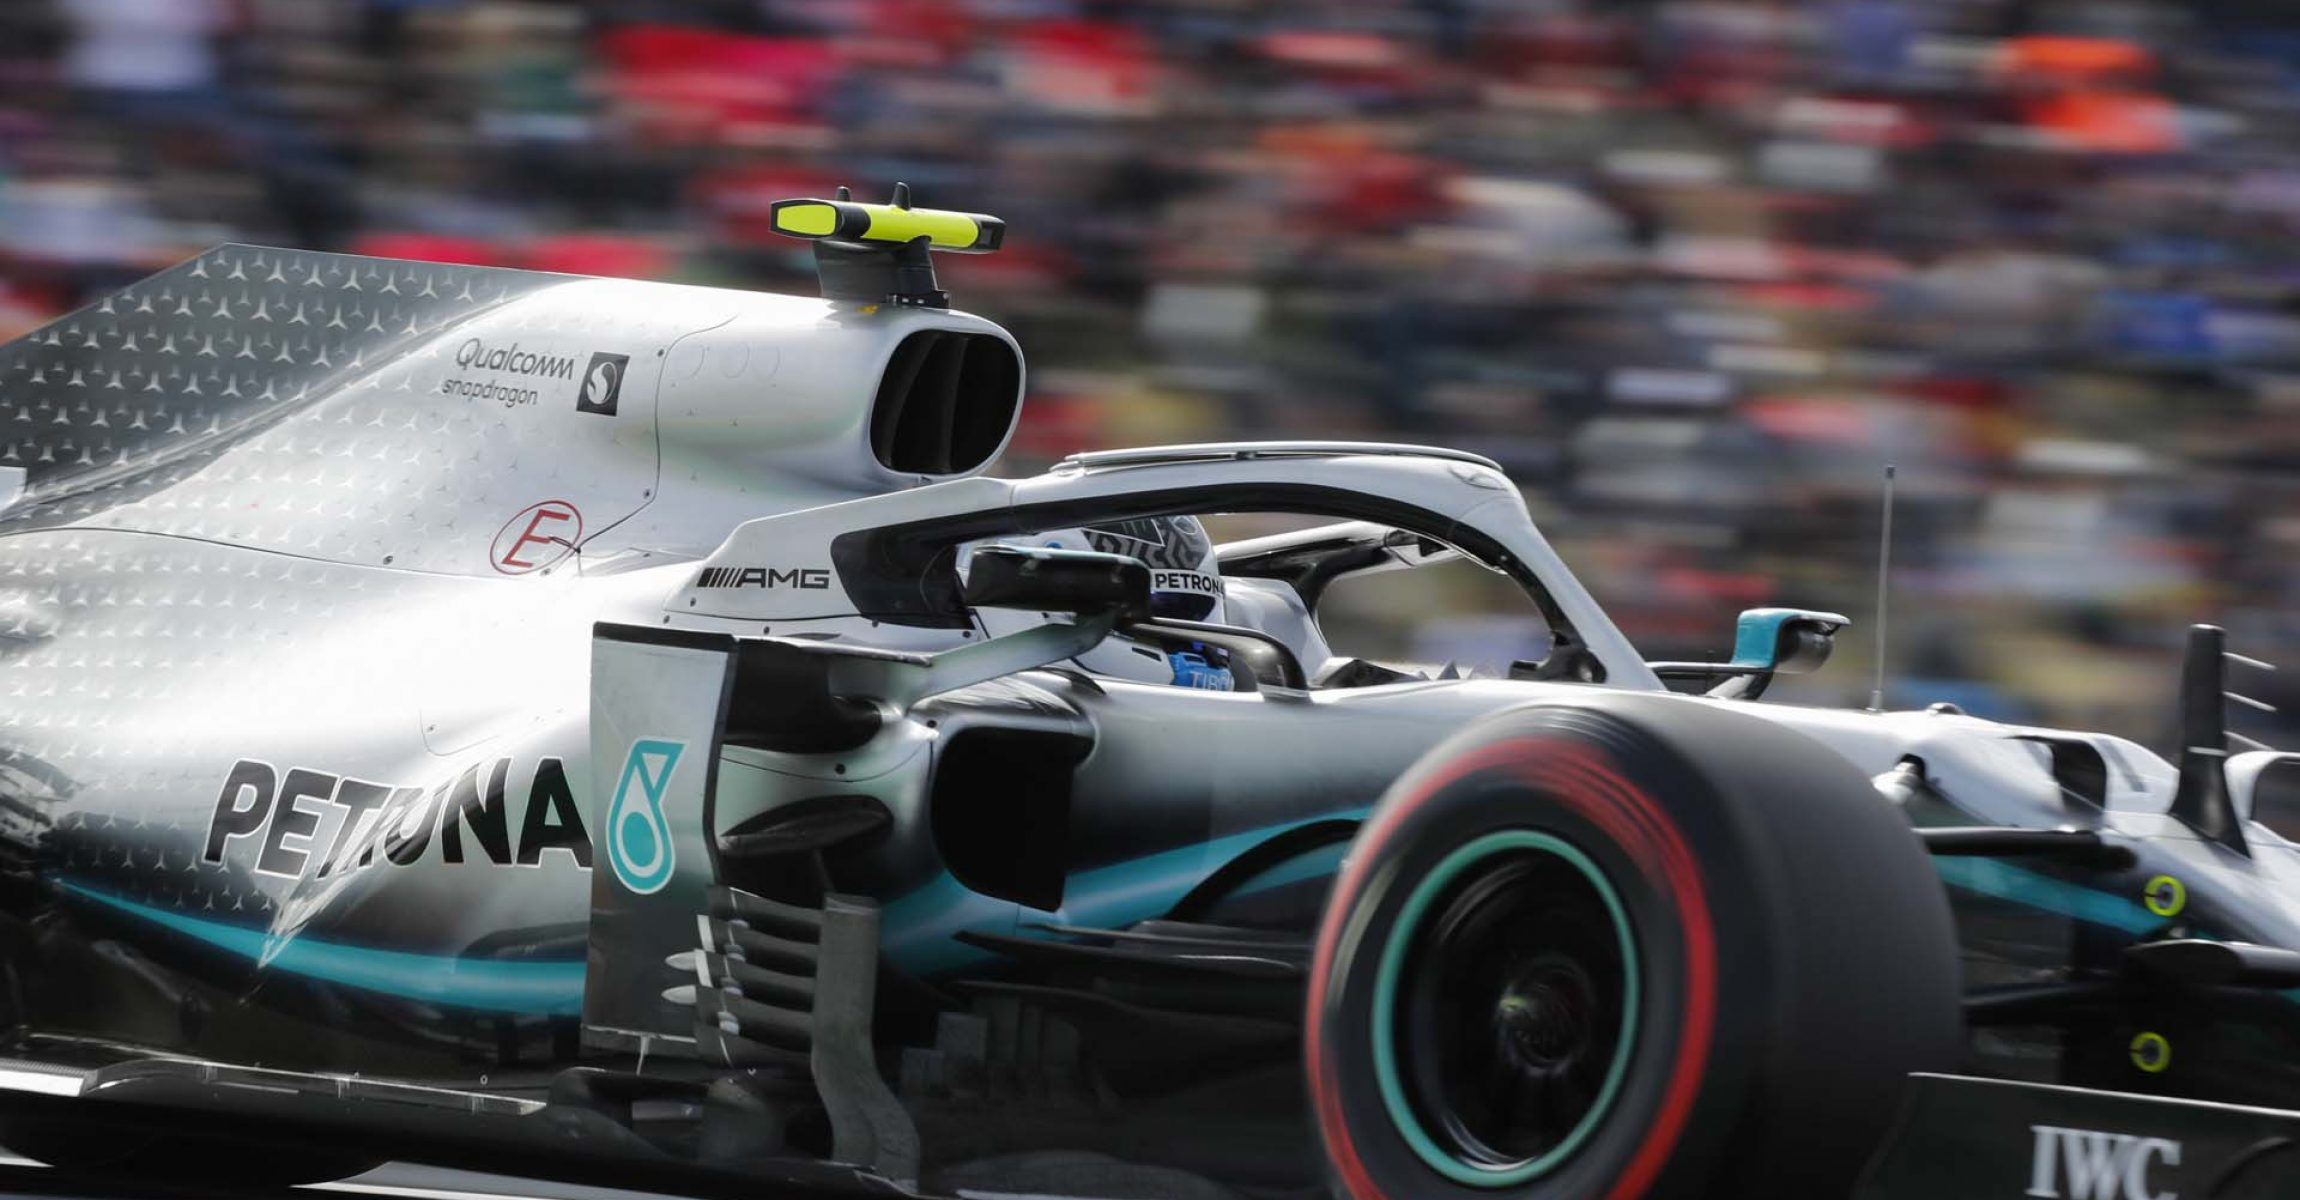 AUSTIN, TEXAS - NOVEMBER 02: Valtteri Bottas, Mercedes AMG W10 during the 2019 Formula One United States Grand Prix at Circuit of the Americas, on November 02, 2019 in Austin, Texas, USA. (Photo by Steven Tee / LAT Images)